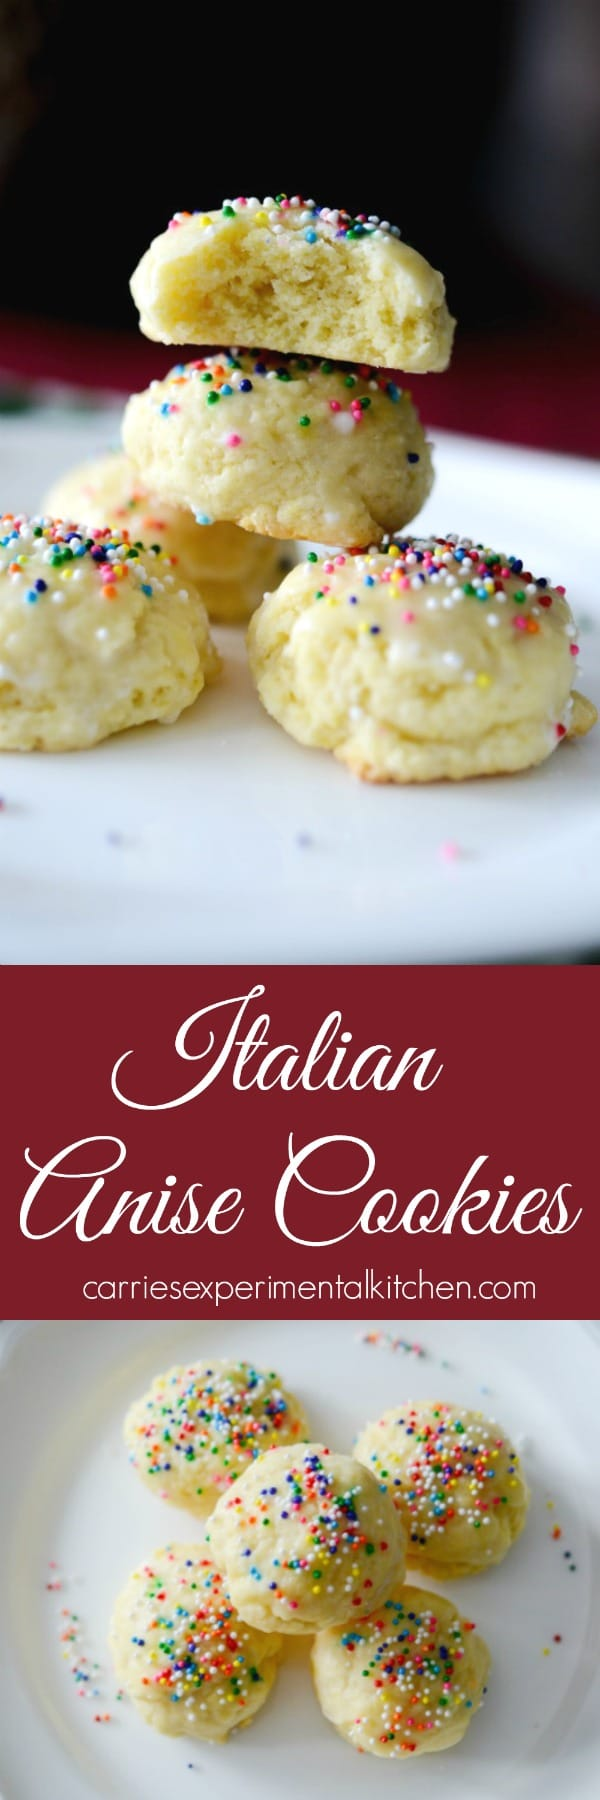 Italian Anise Cookies traditionally are a soft, licorice flavored cookie covered with a powdered sugar glaze and nonpareil's sprinkled on top.  #cookies #italian #anise #dessert